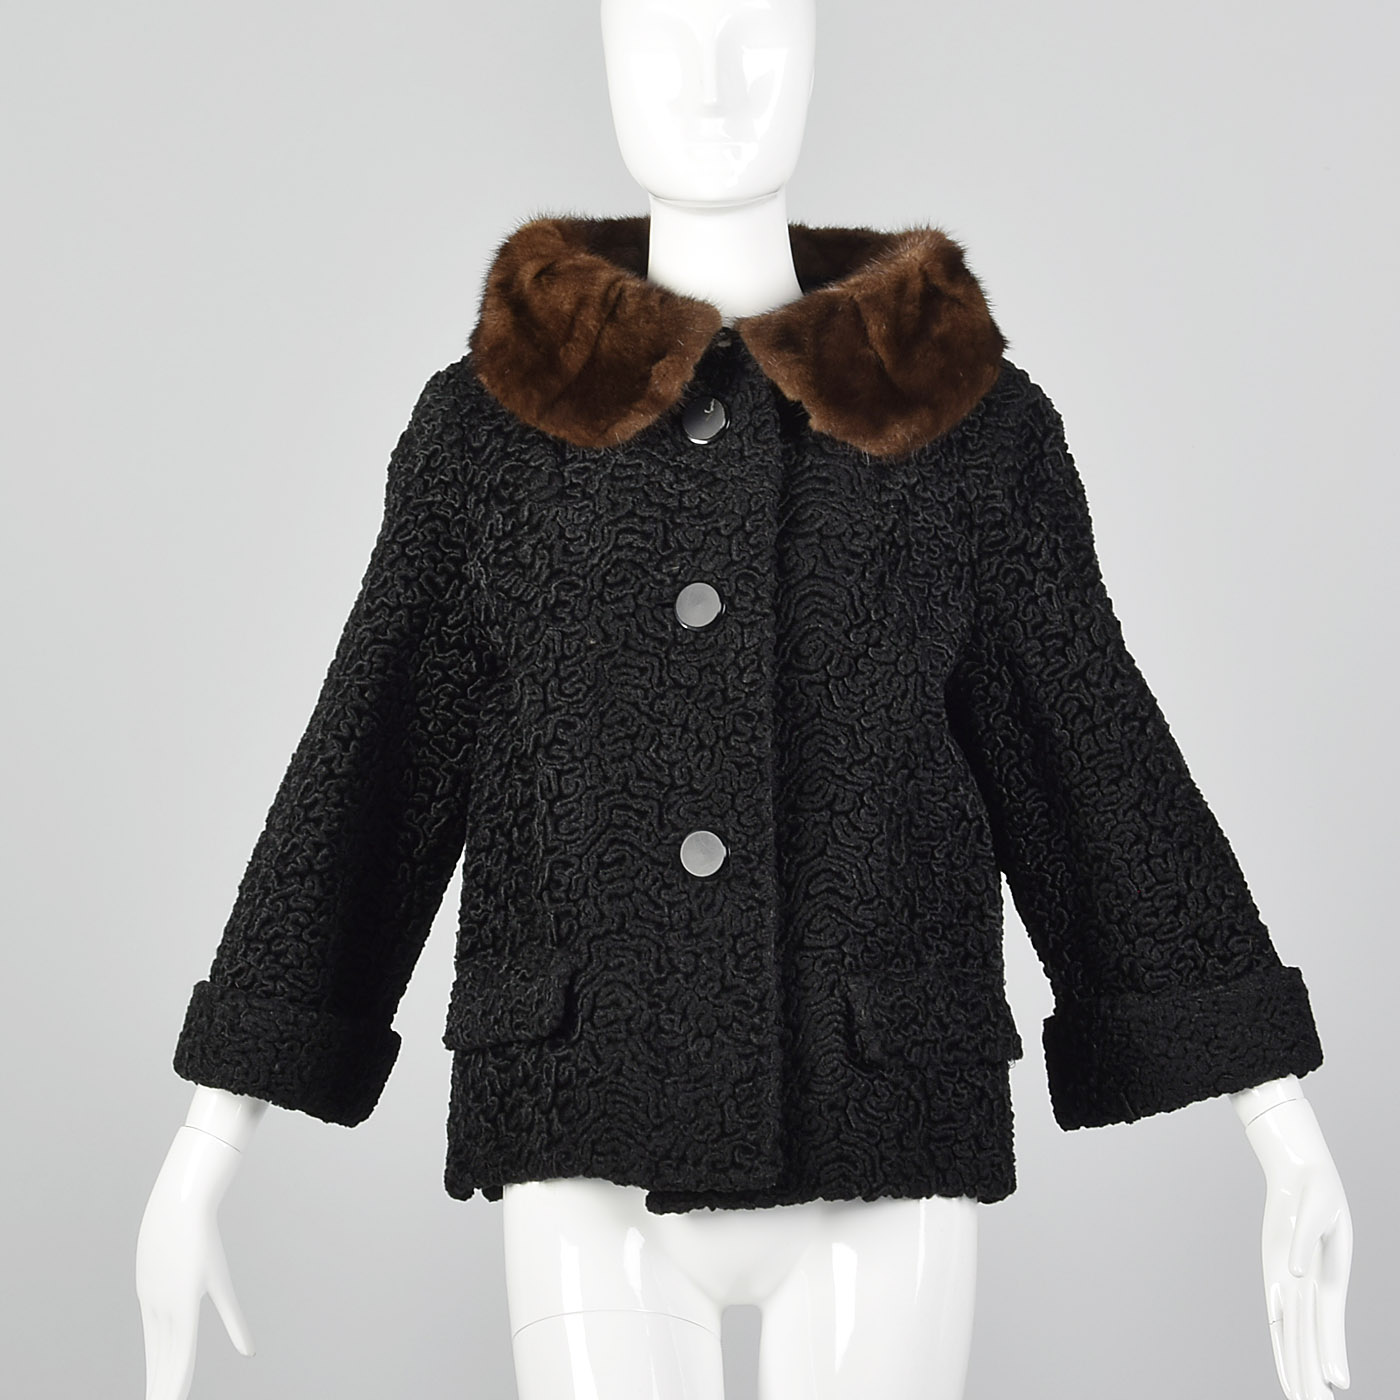 8416ceaf293fd Details about S 1950s Black Persian Lamb Jacket Mink Collar Short Winter Coat  Fur Trim 50s VTG